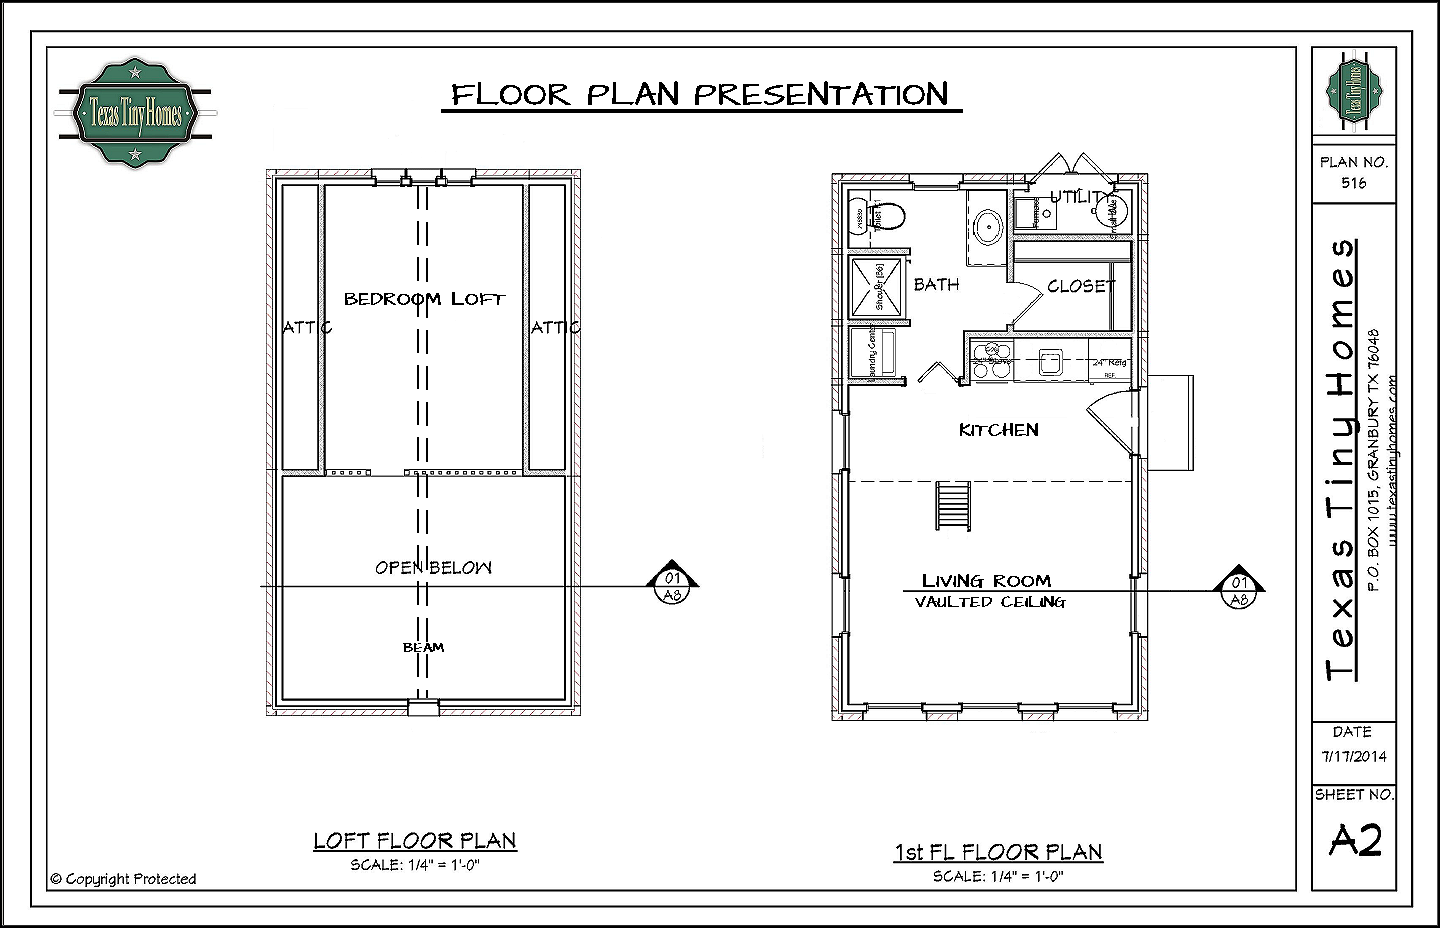 Texas tiny homes plan 516 for Small house design plans